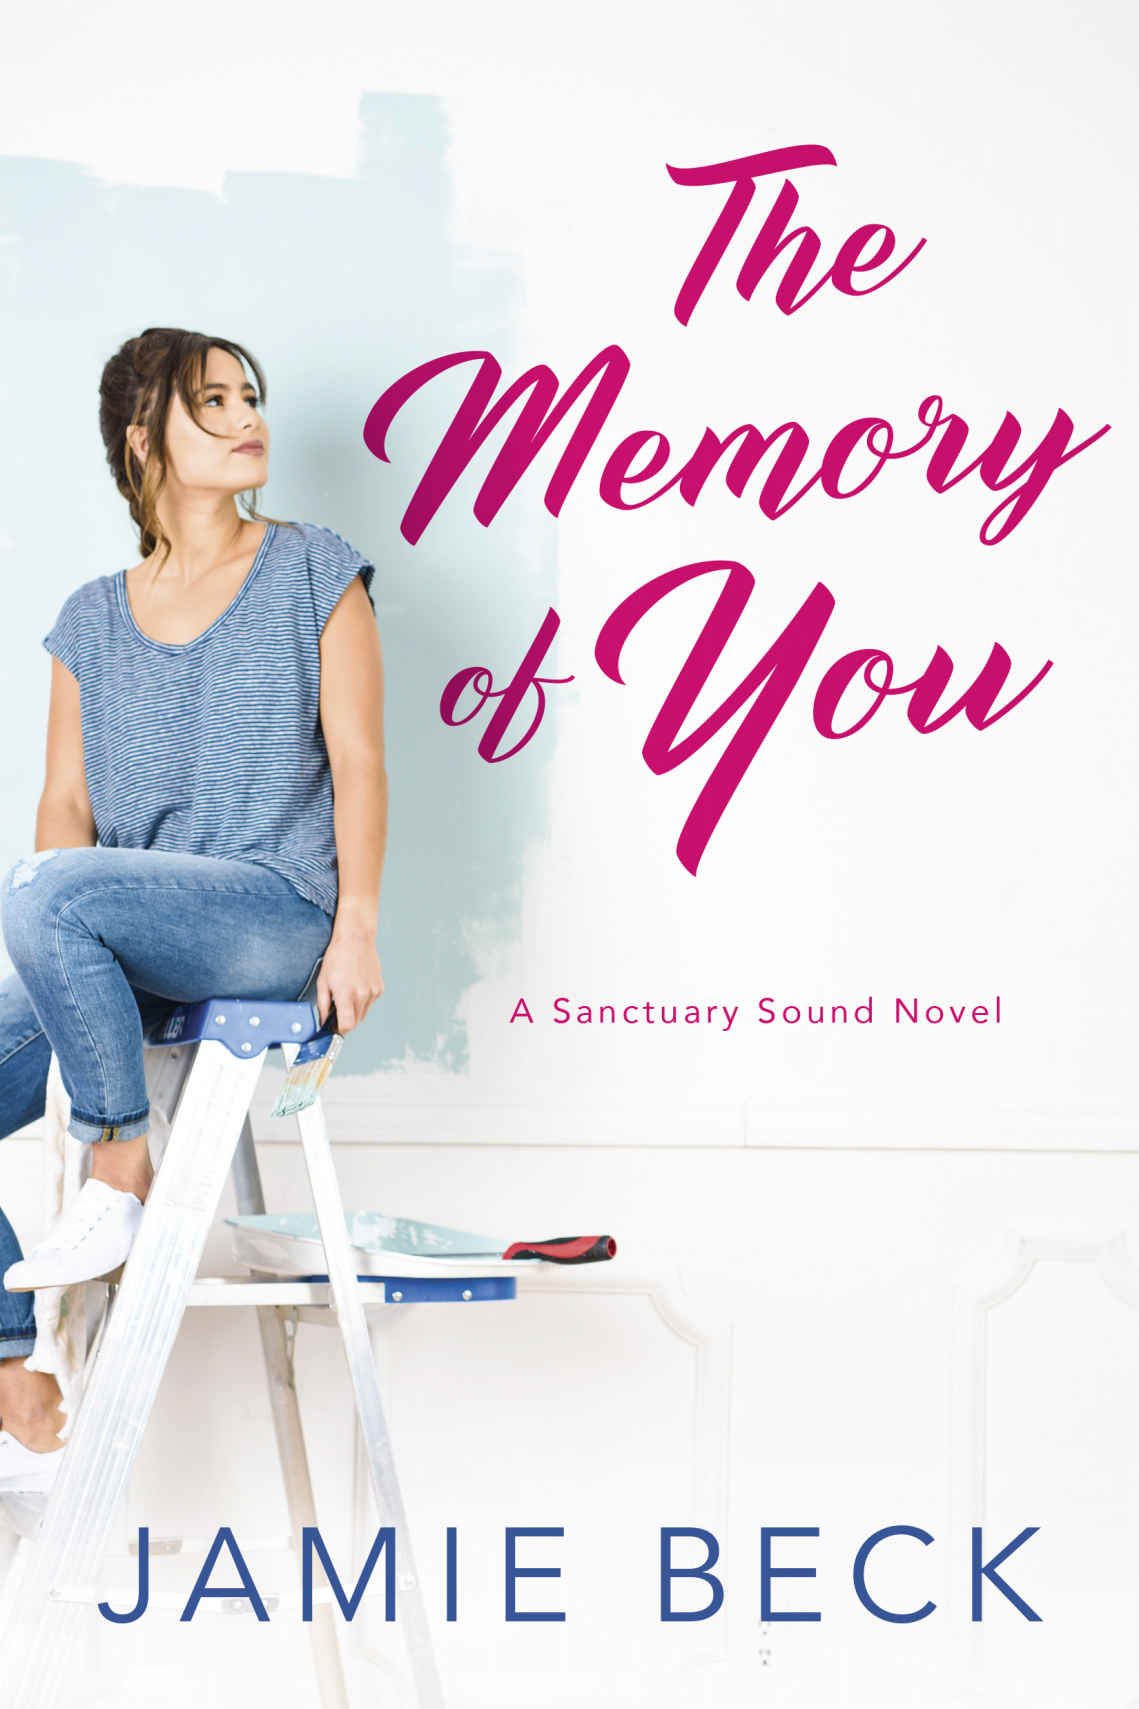 The Memory of You (Sanctuary Sound Book 1) - Jamie Beck [kindle] [mobi]